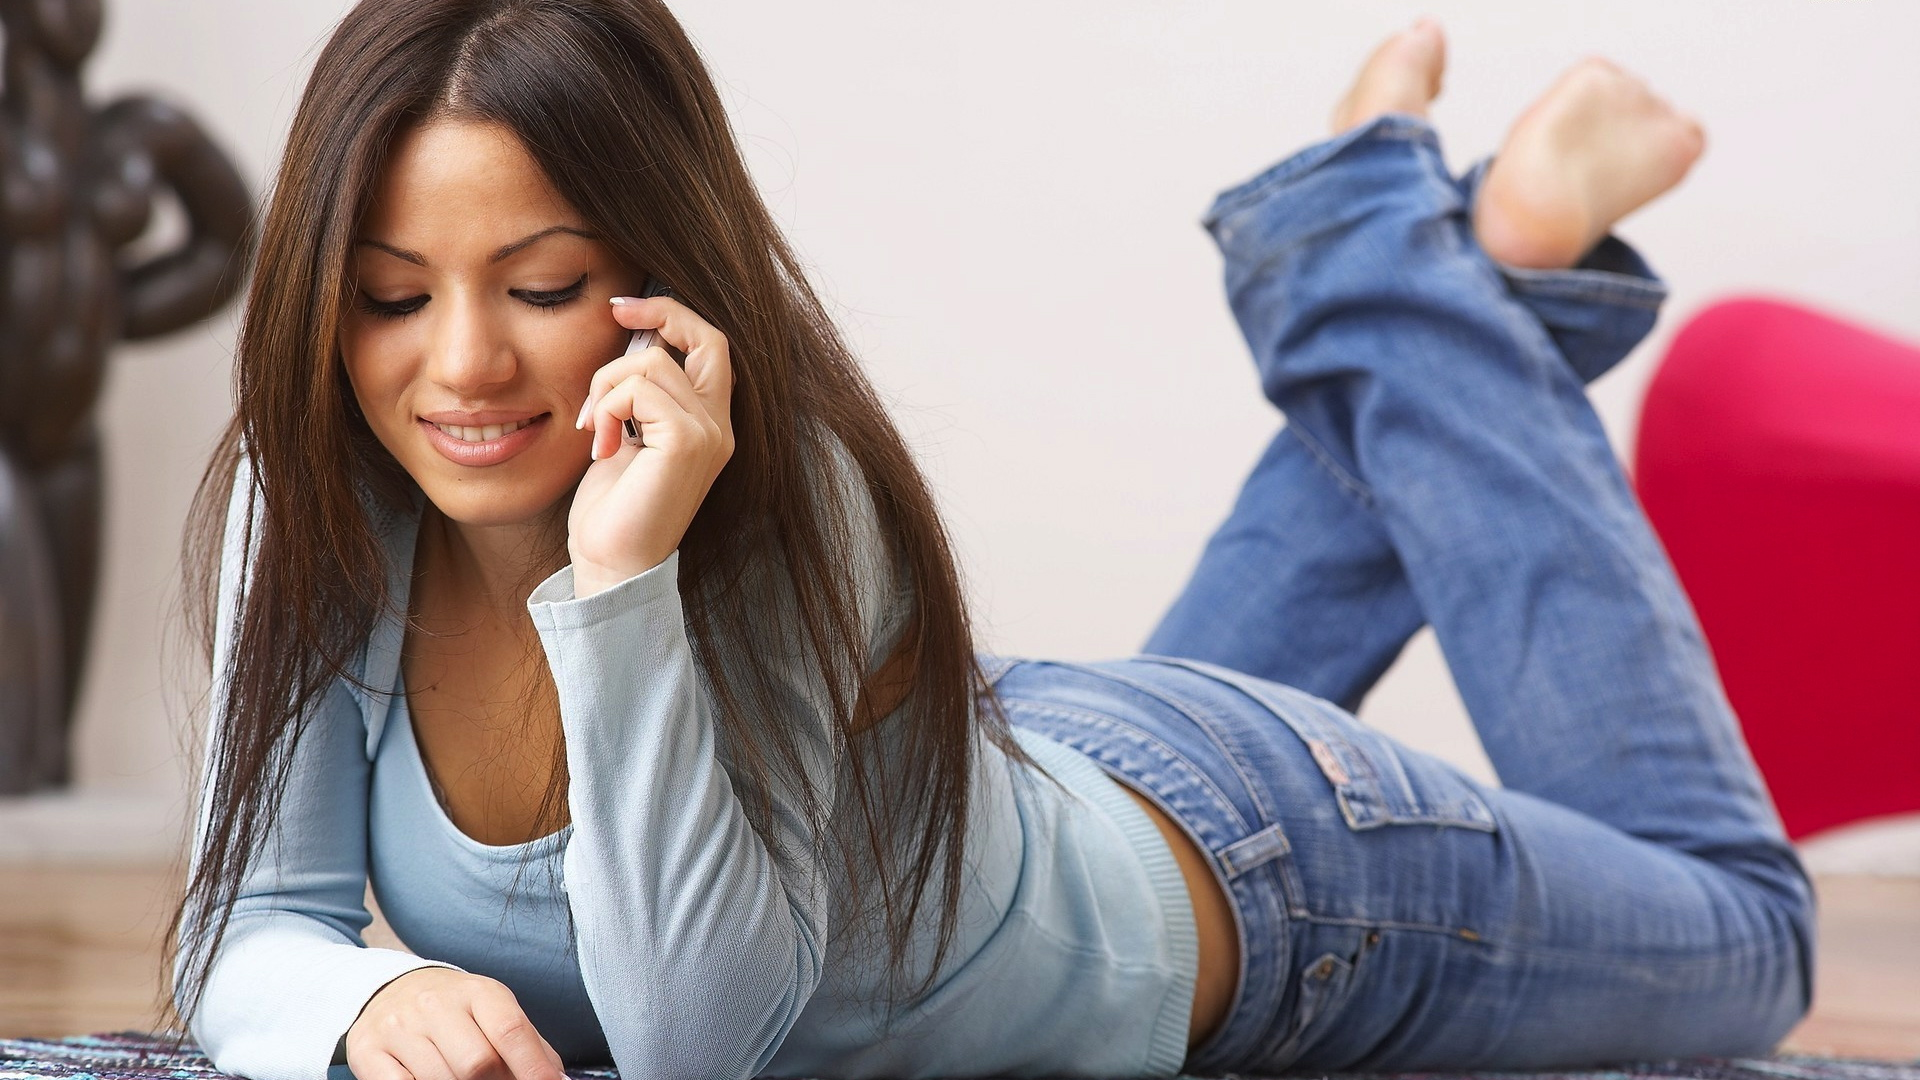 15673-girl-talking-on-the-phone-1920x1200-girl-wallpaper.jpg